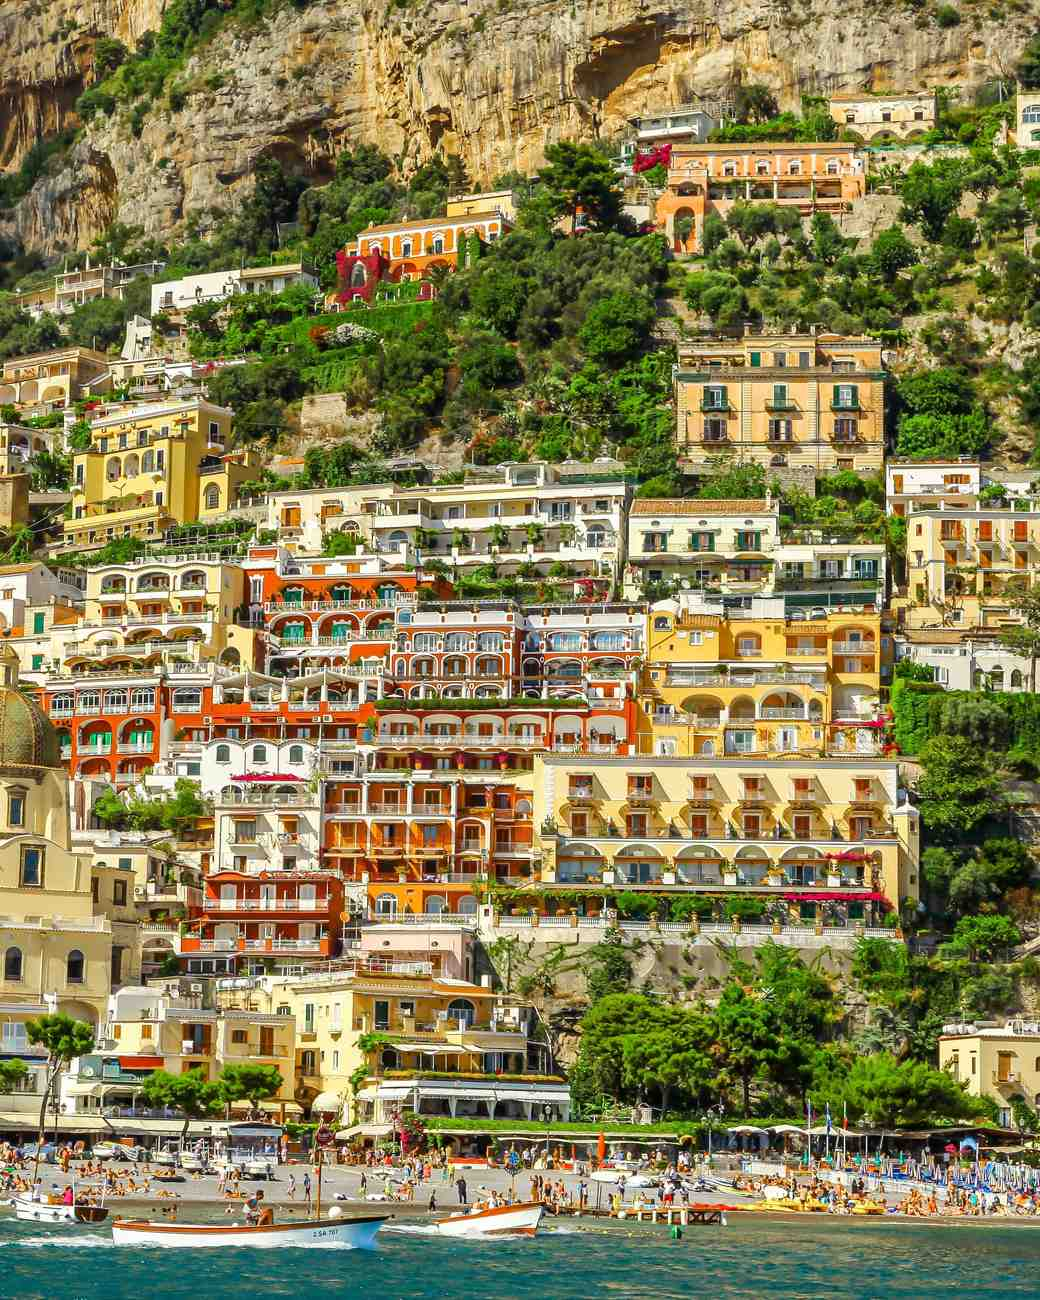 amalfi coast buildings